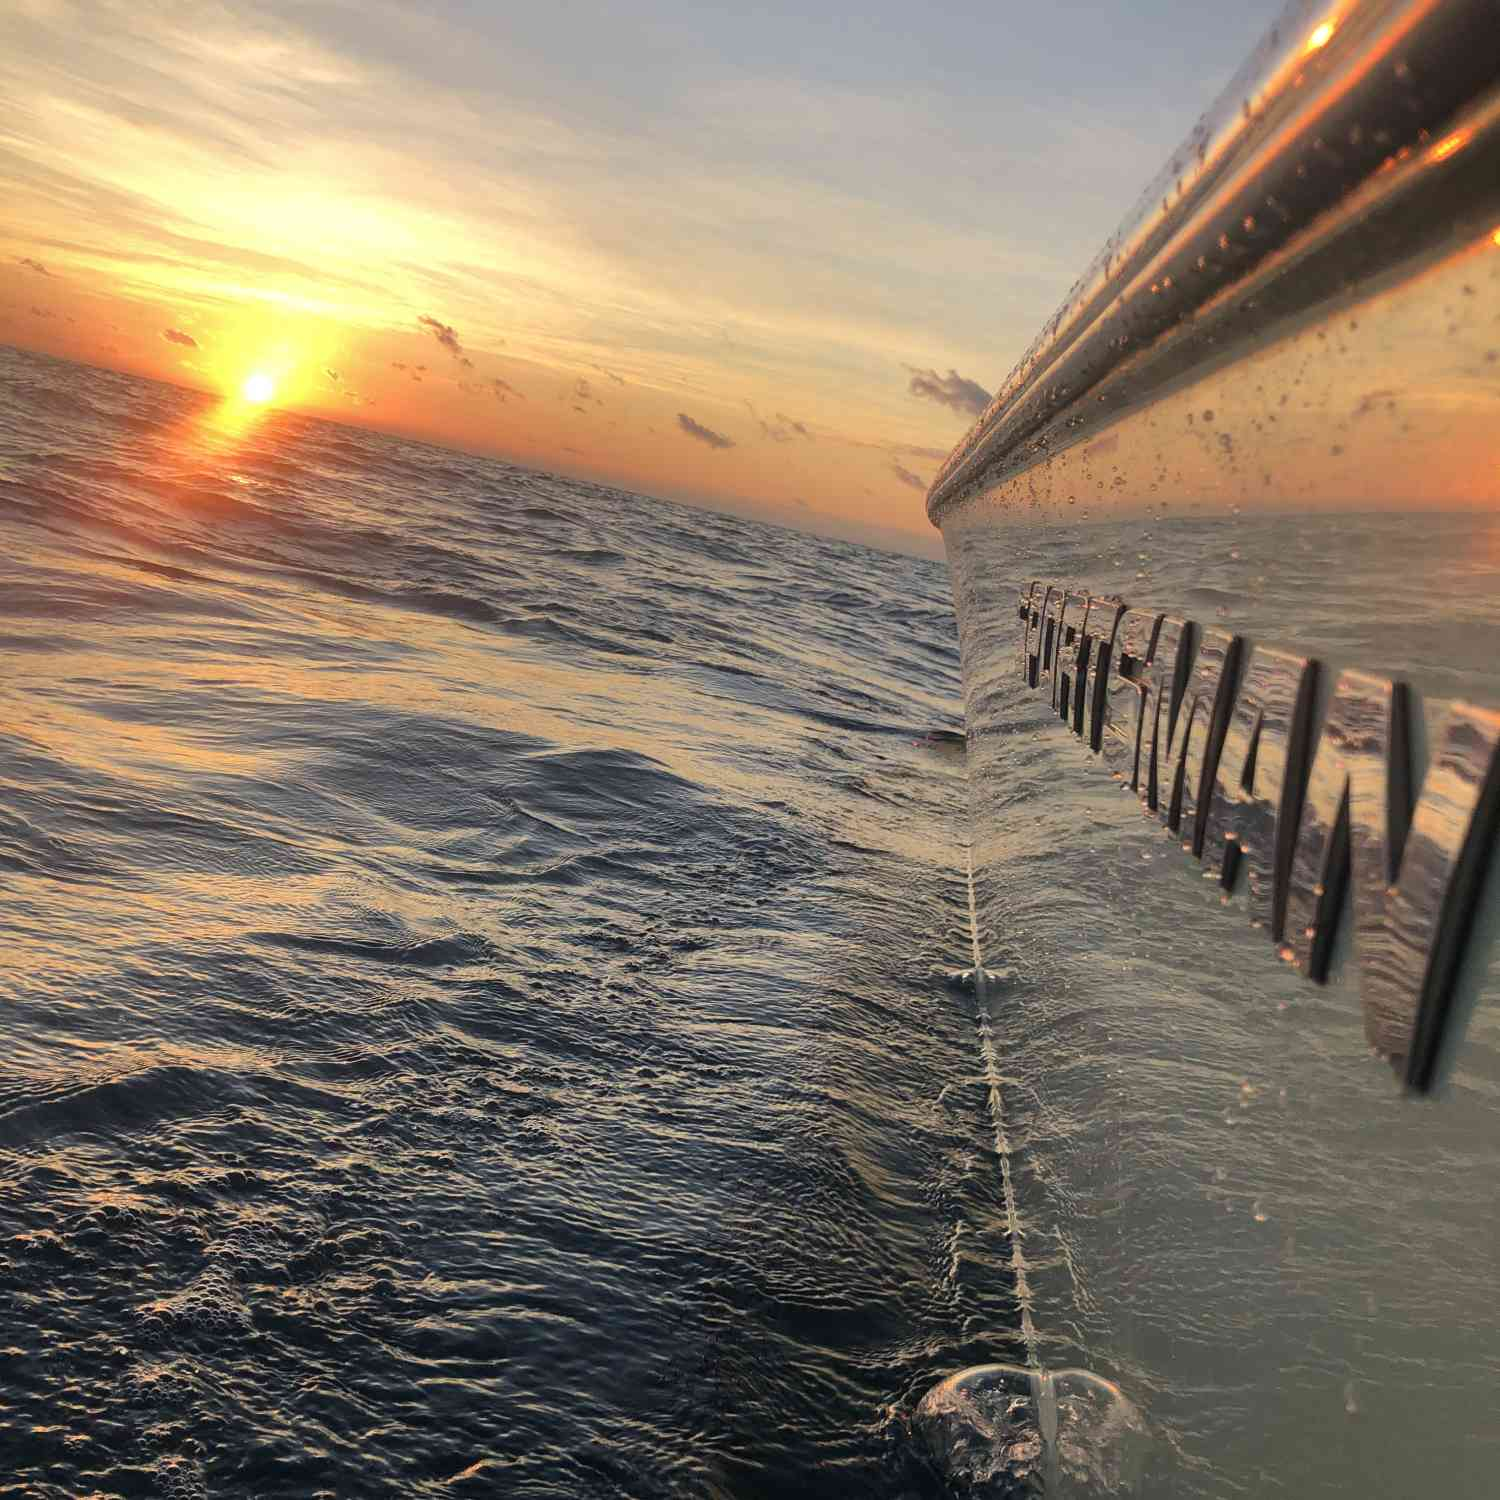 Title: Florida Keys sunrise - On board their Sportsman Masters 227 Bay Boat - Location: Marathon Florida. Participating in the Photo Contest #SportsmanDecember2019